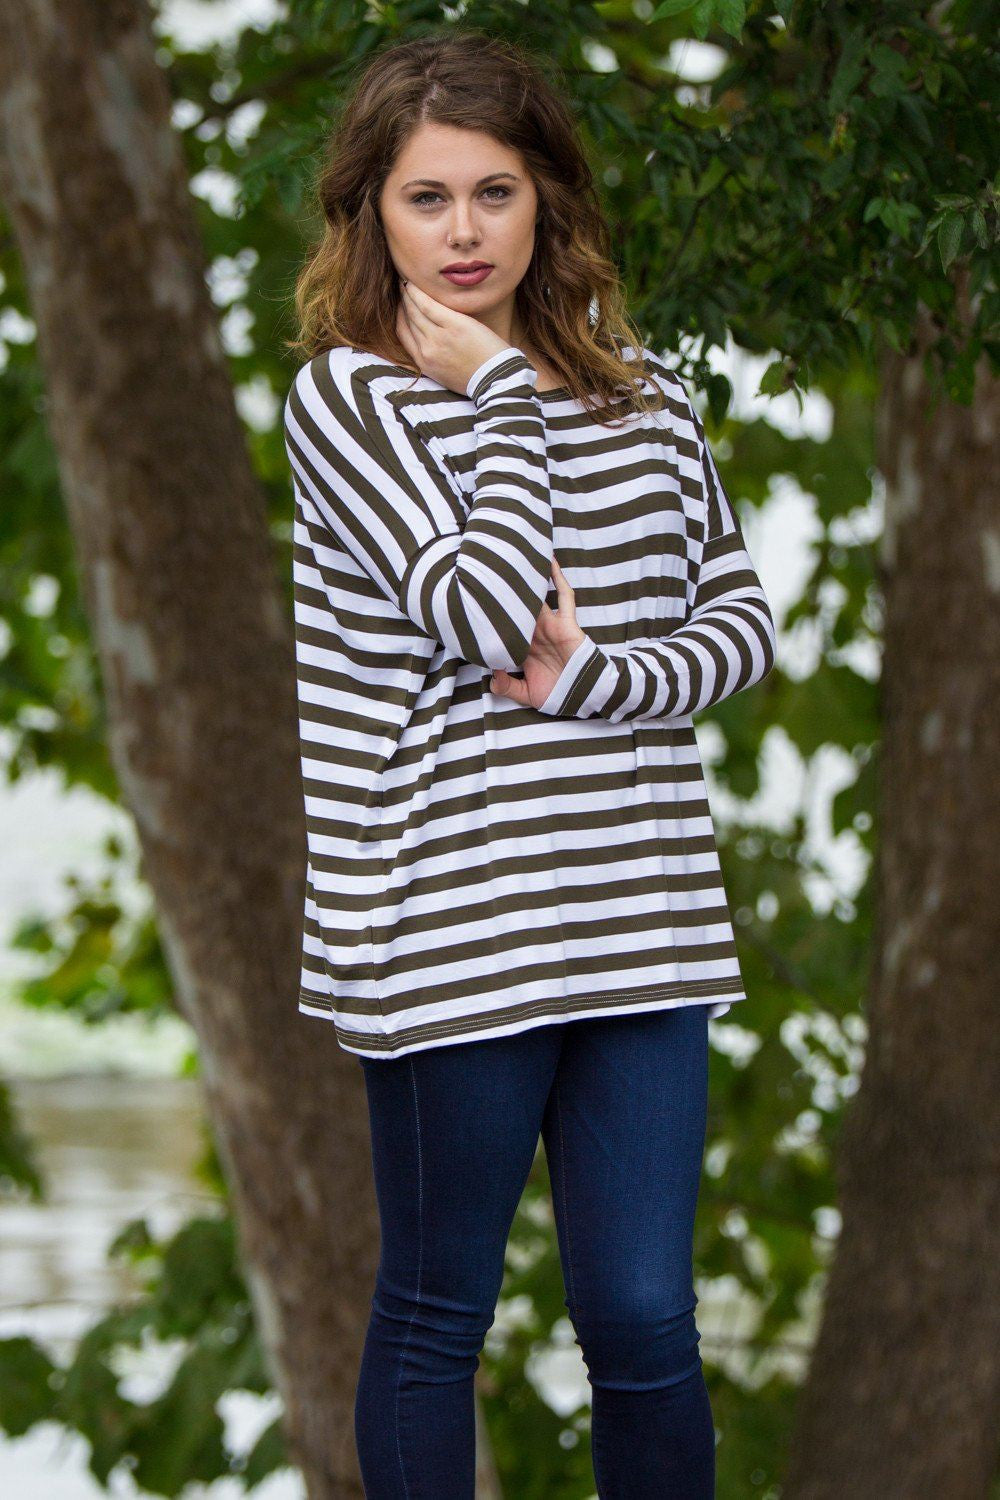 Long Sleeve Thick Stripe Piko Top - Olive/White - Piko Clothing